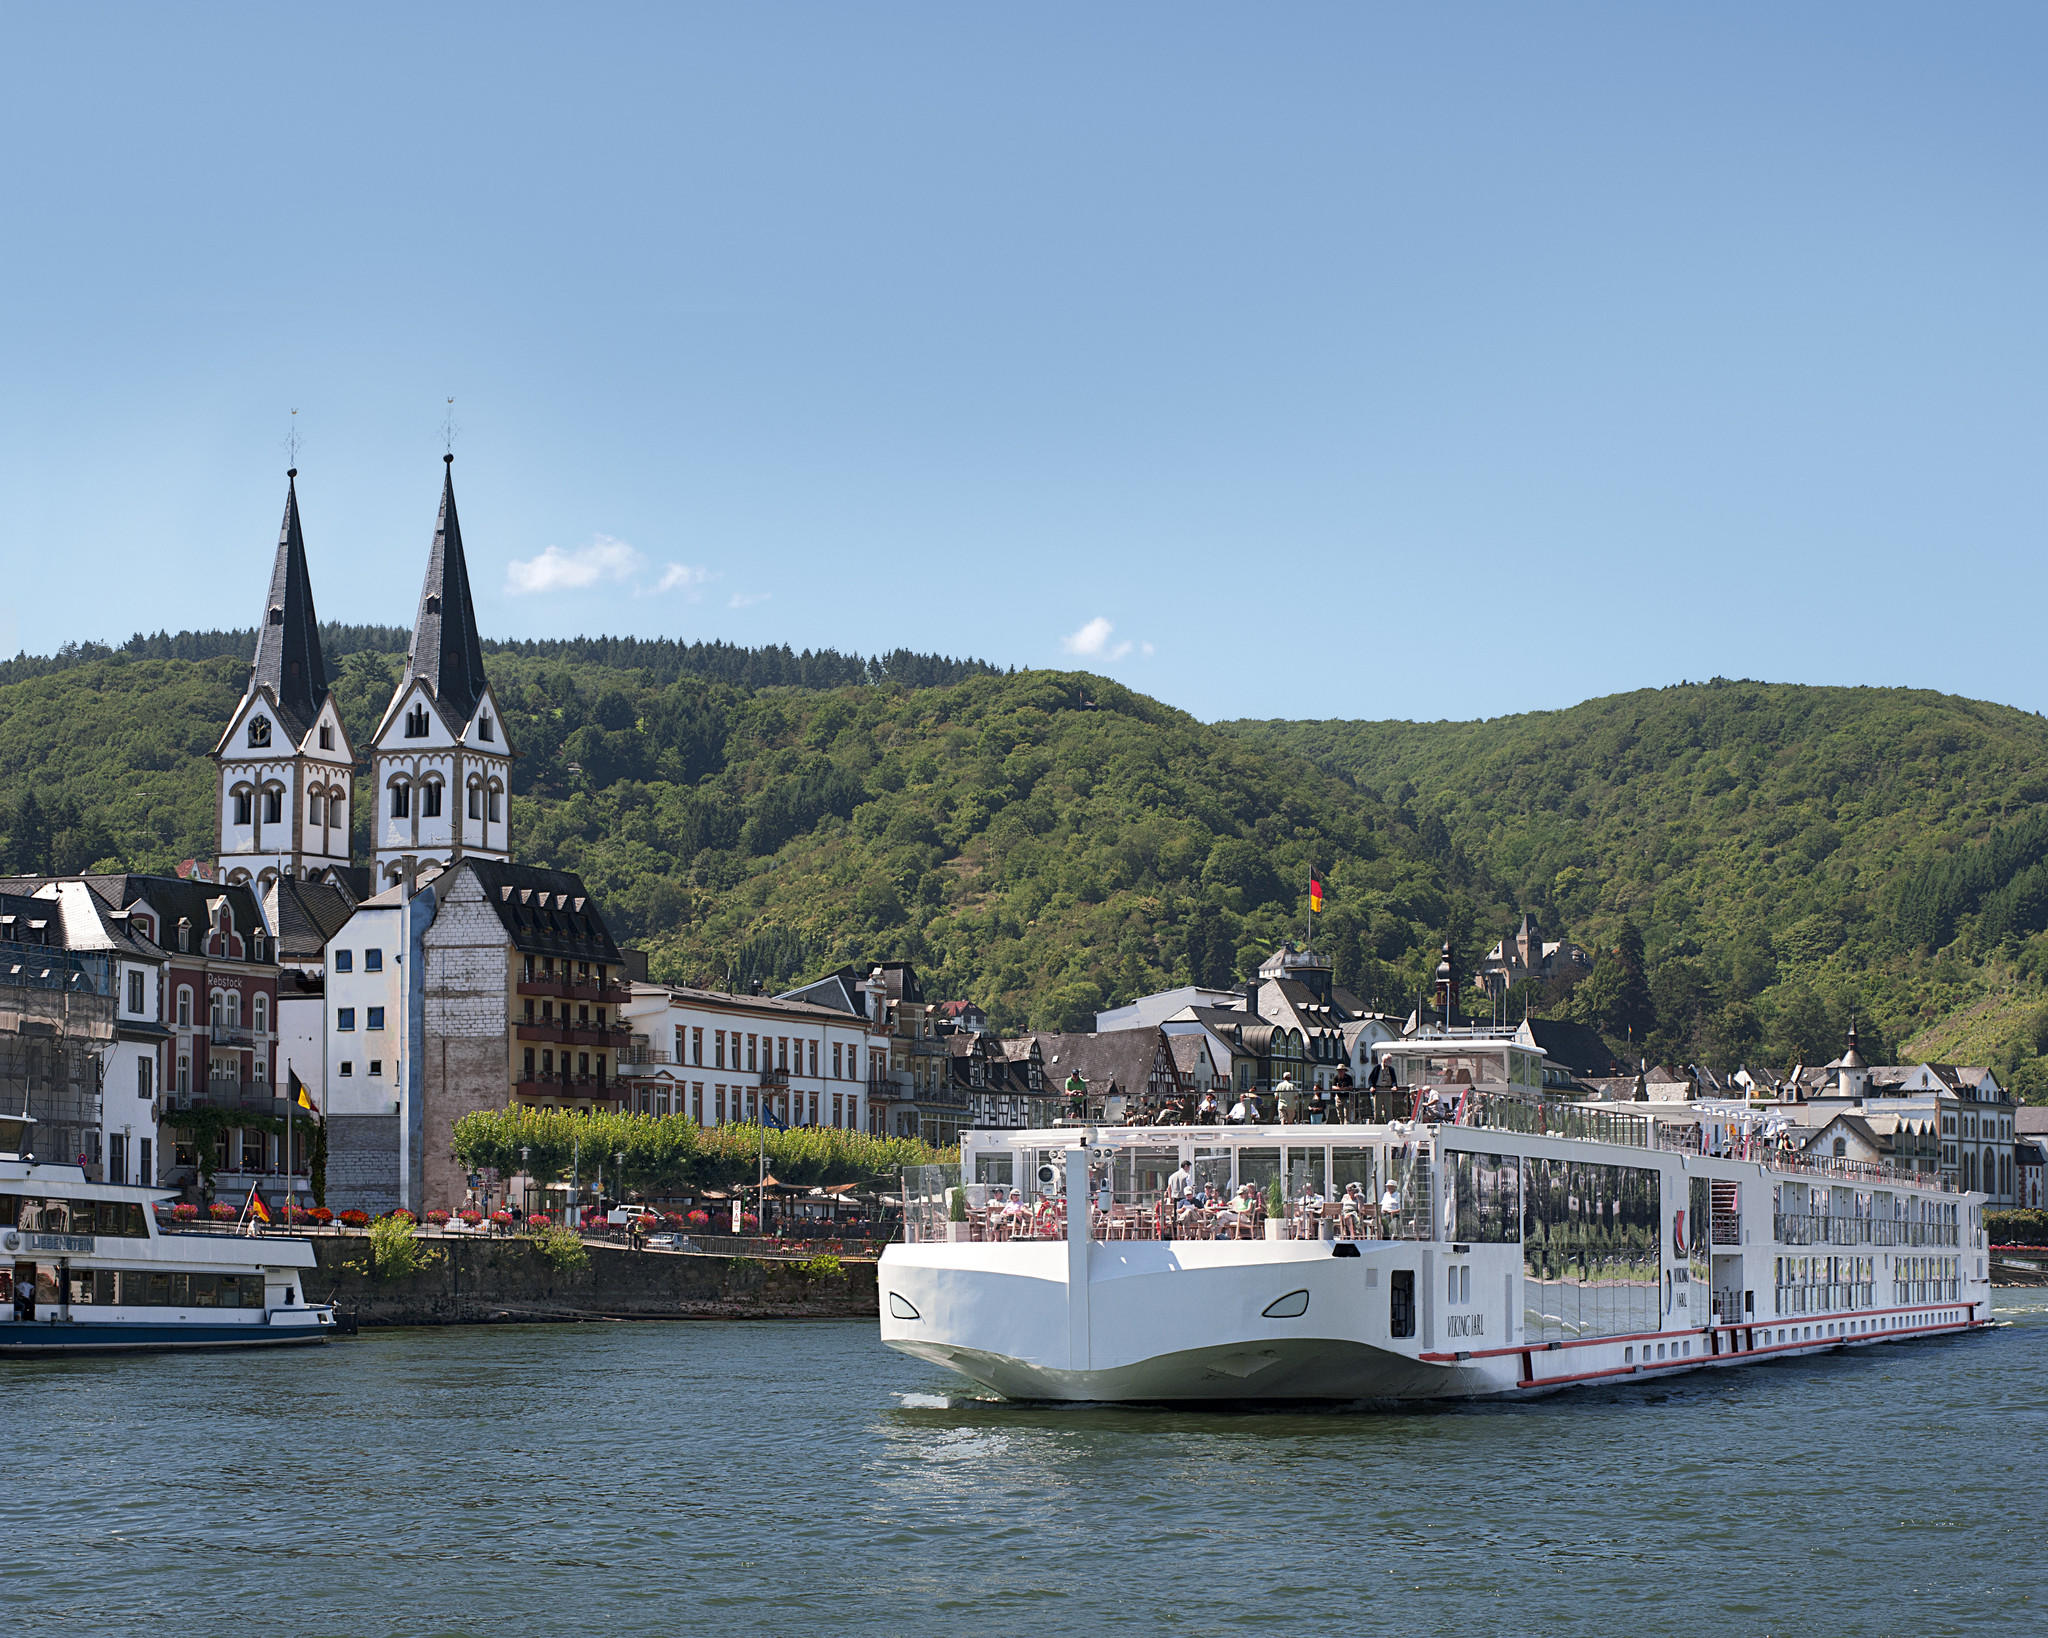 Viking's Jarl long ship cruises along the Rhine. The Jarl first sailed in July, and new vessels continue to join the Viking family, including a dozen in 2015.